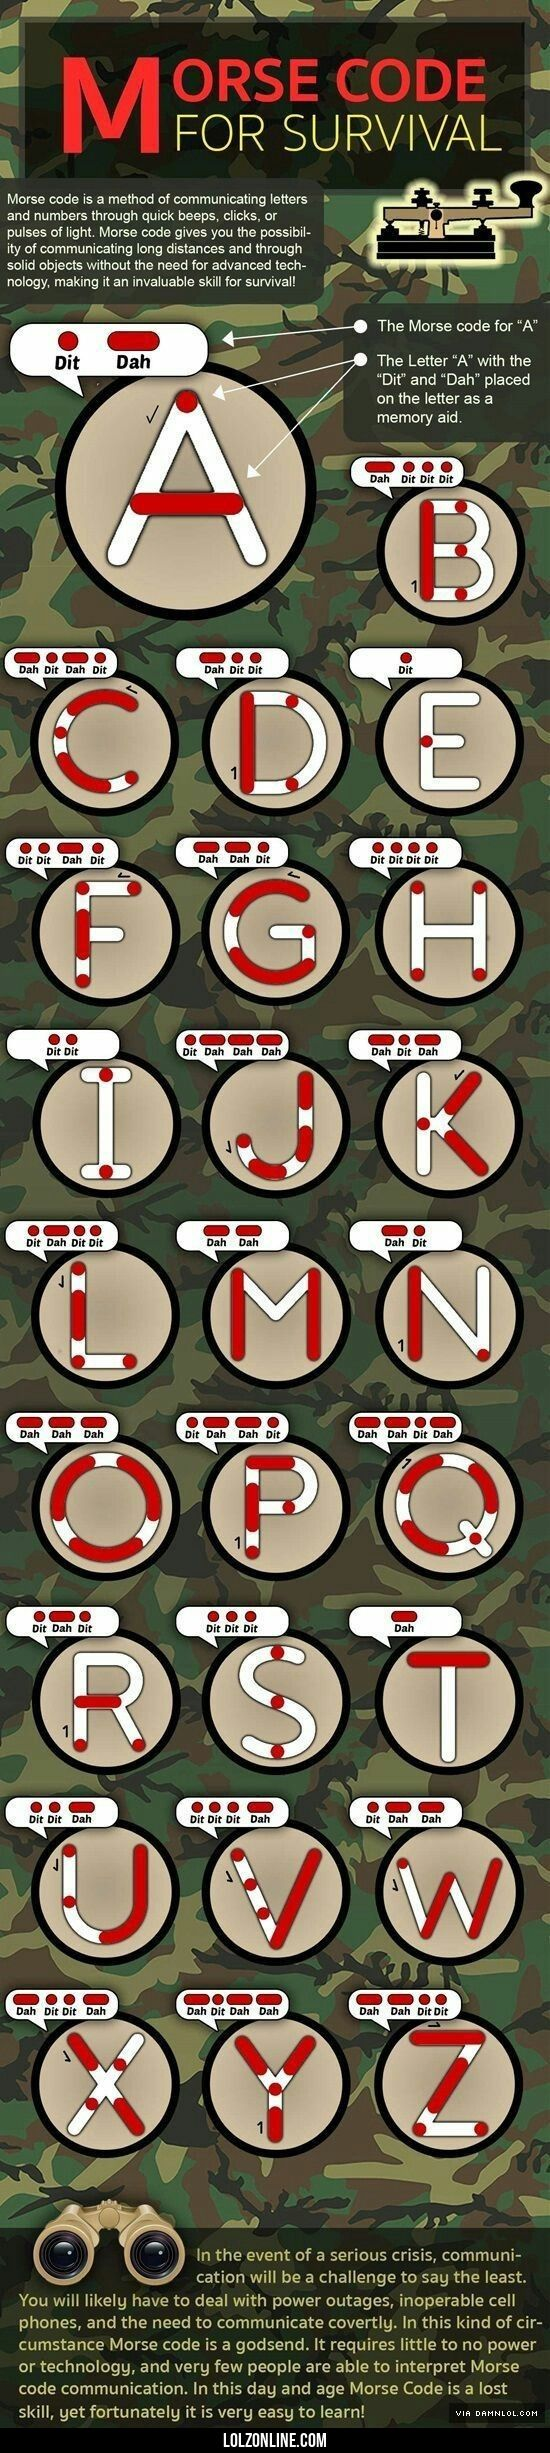 Morse Code For Survival #lol #haha #funny